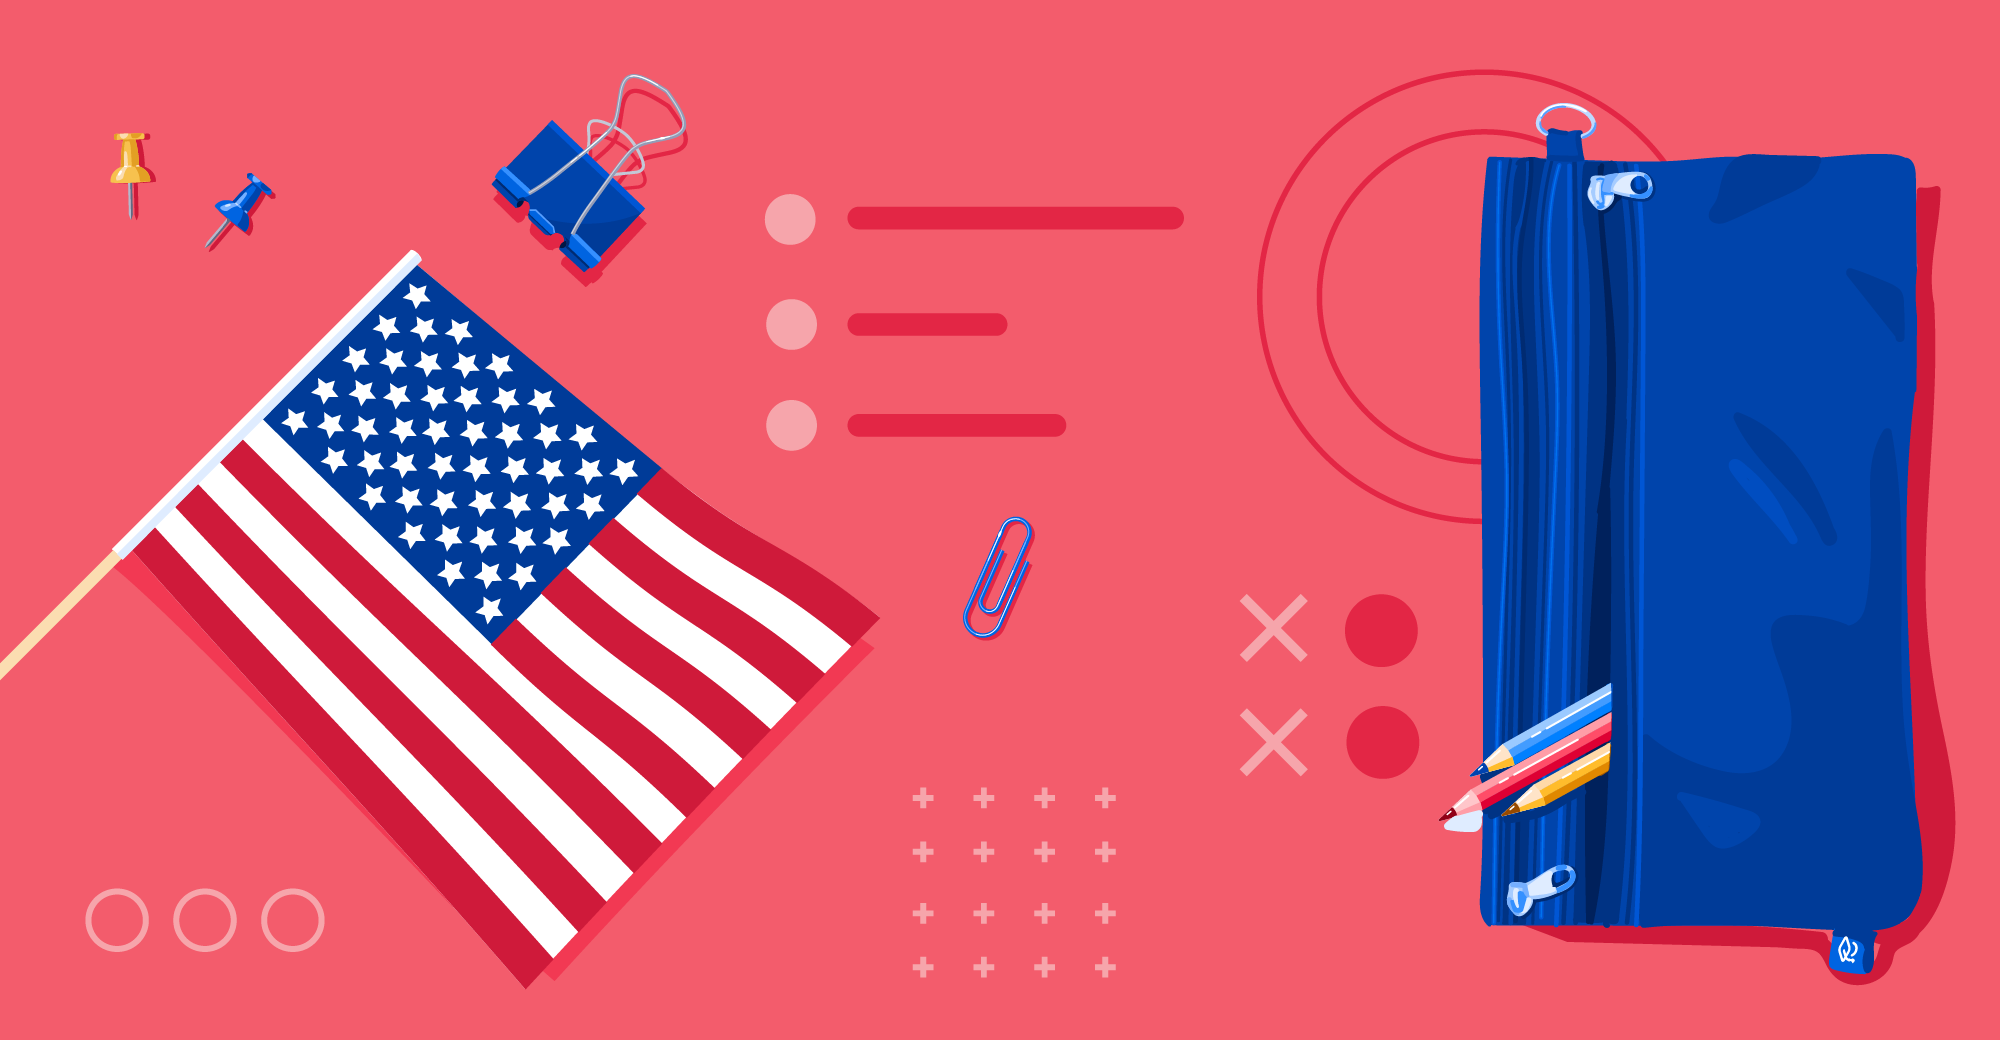 Illustration of US flag and pencil case